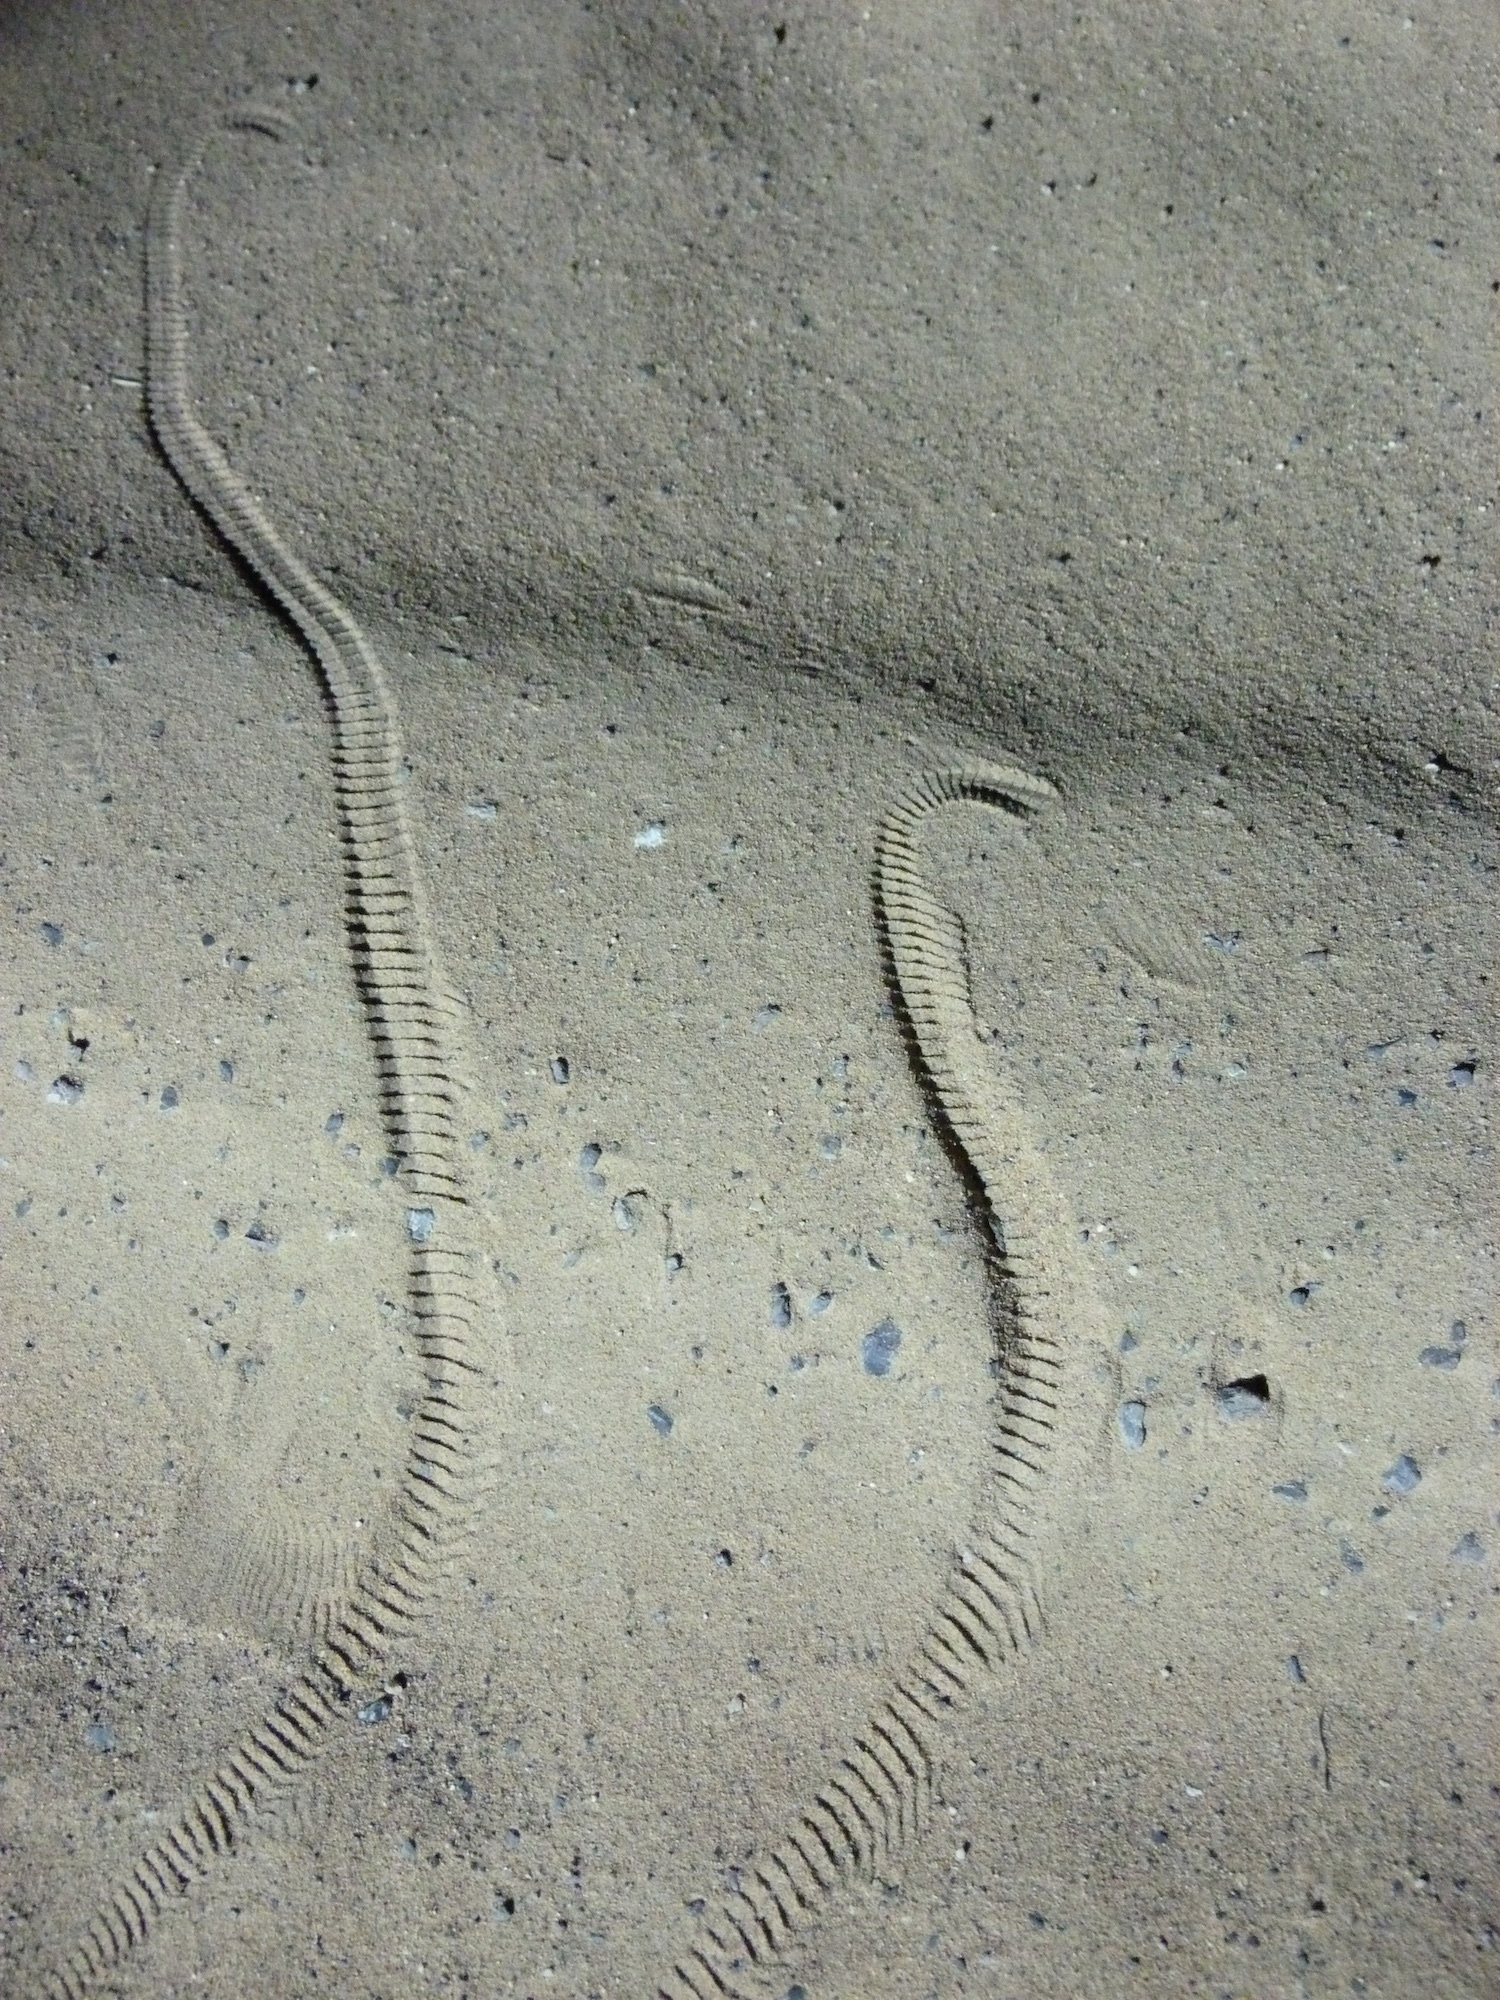 snake tracks in UAE desert